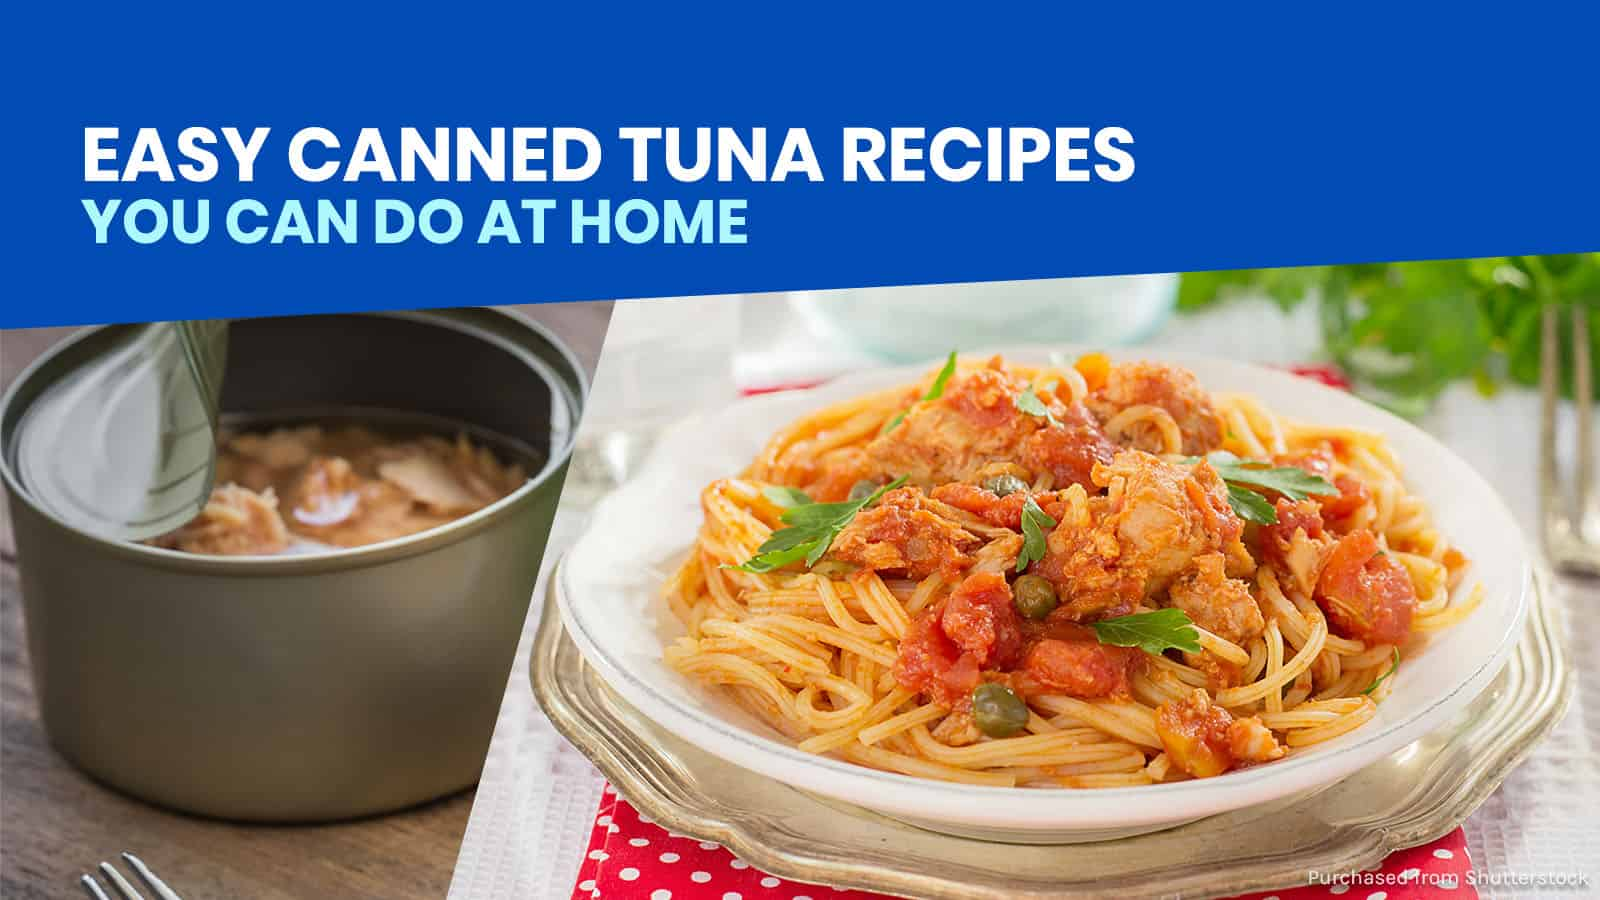 12 Easy Canned Tuna Recipes You Can Do At Home The Poor Traveler Itinerary Blog